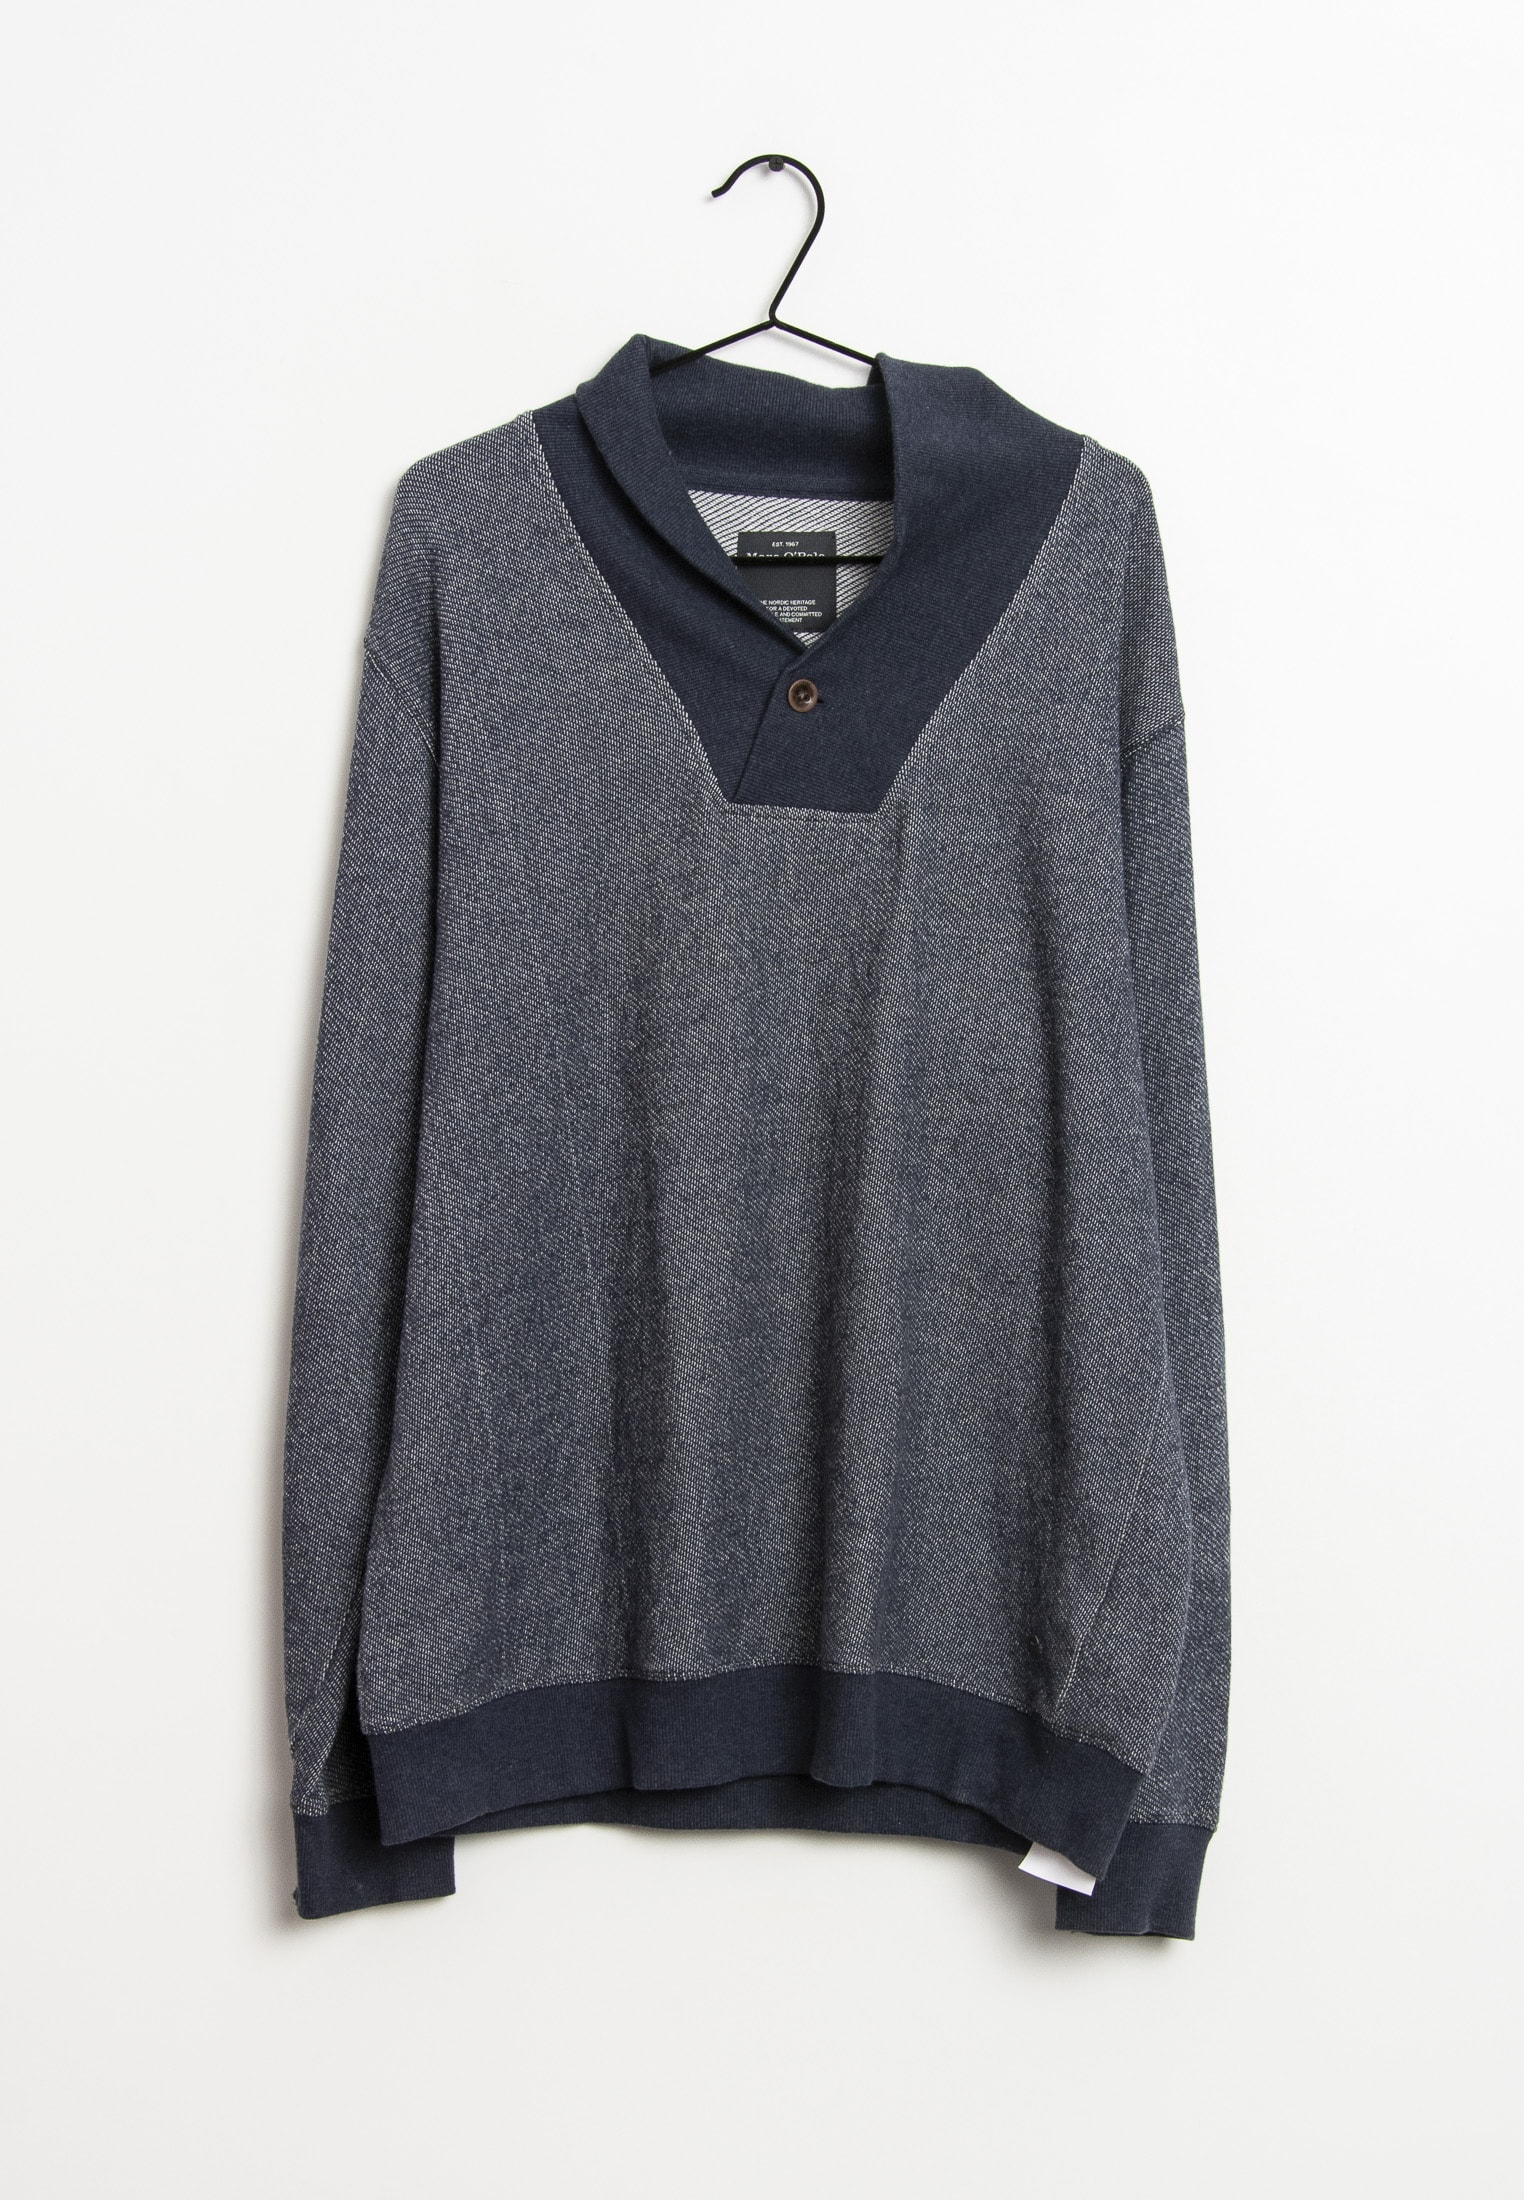 Marc O'Polo Sweat / Fleece Blau Gr.XL